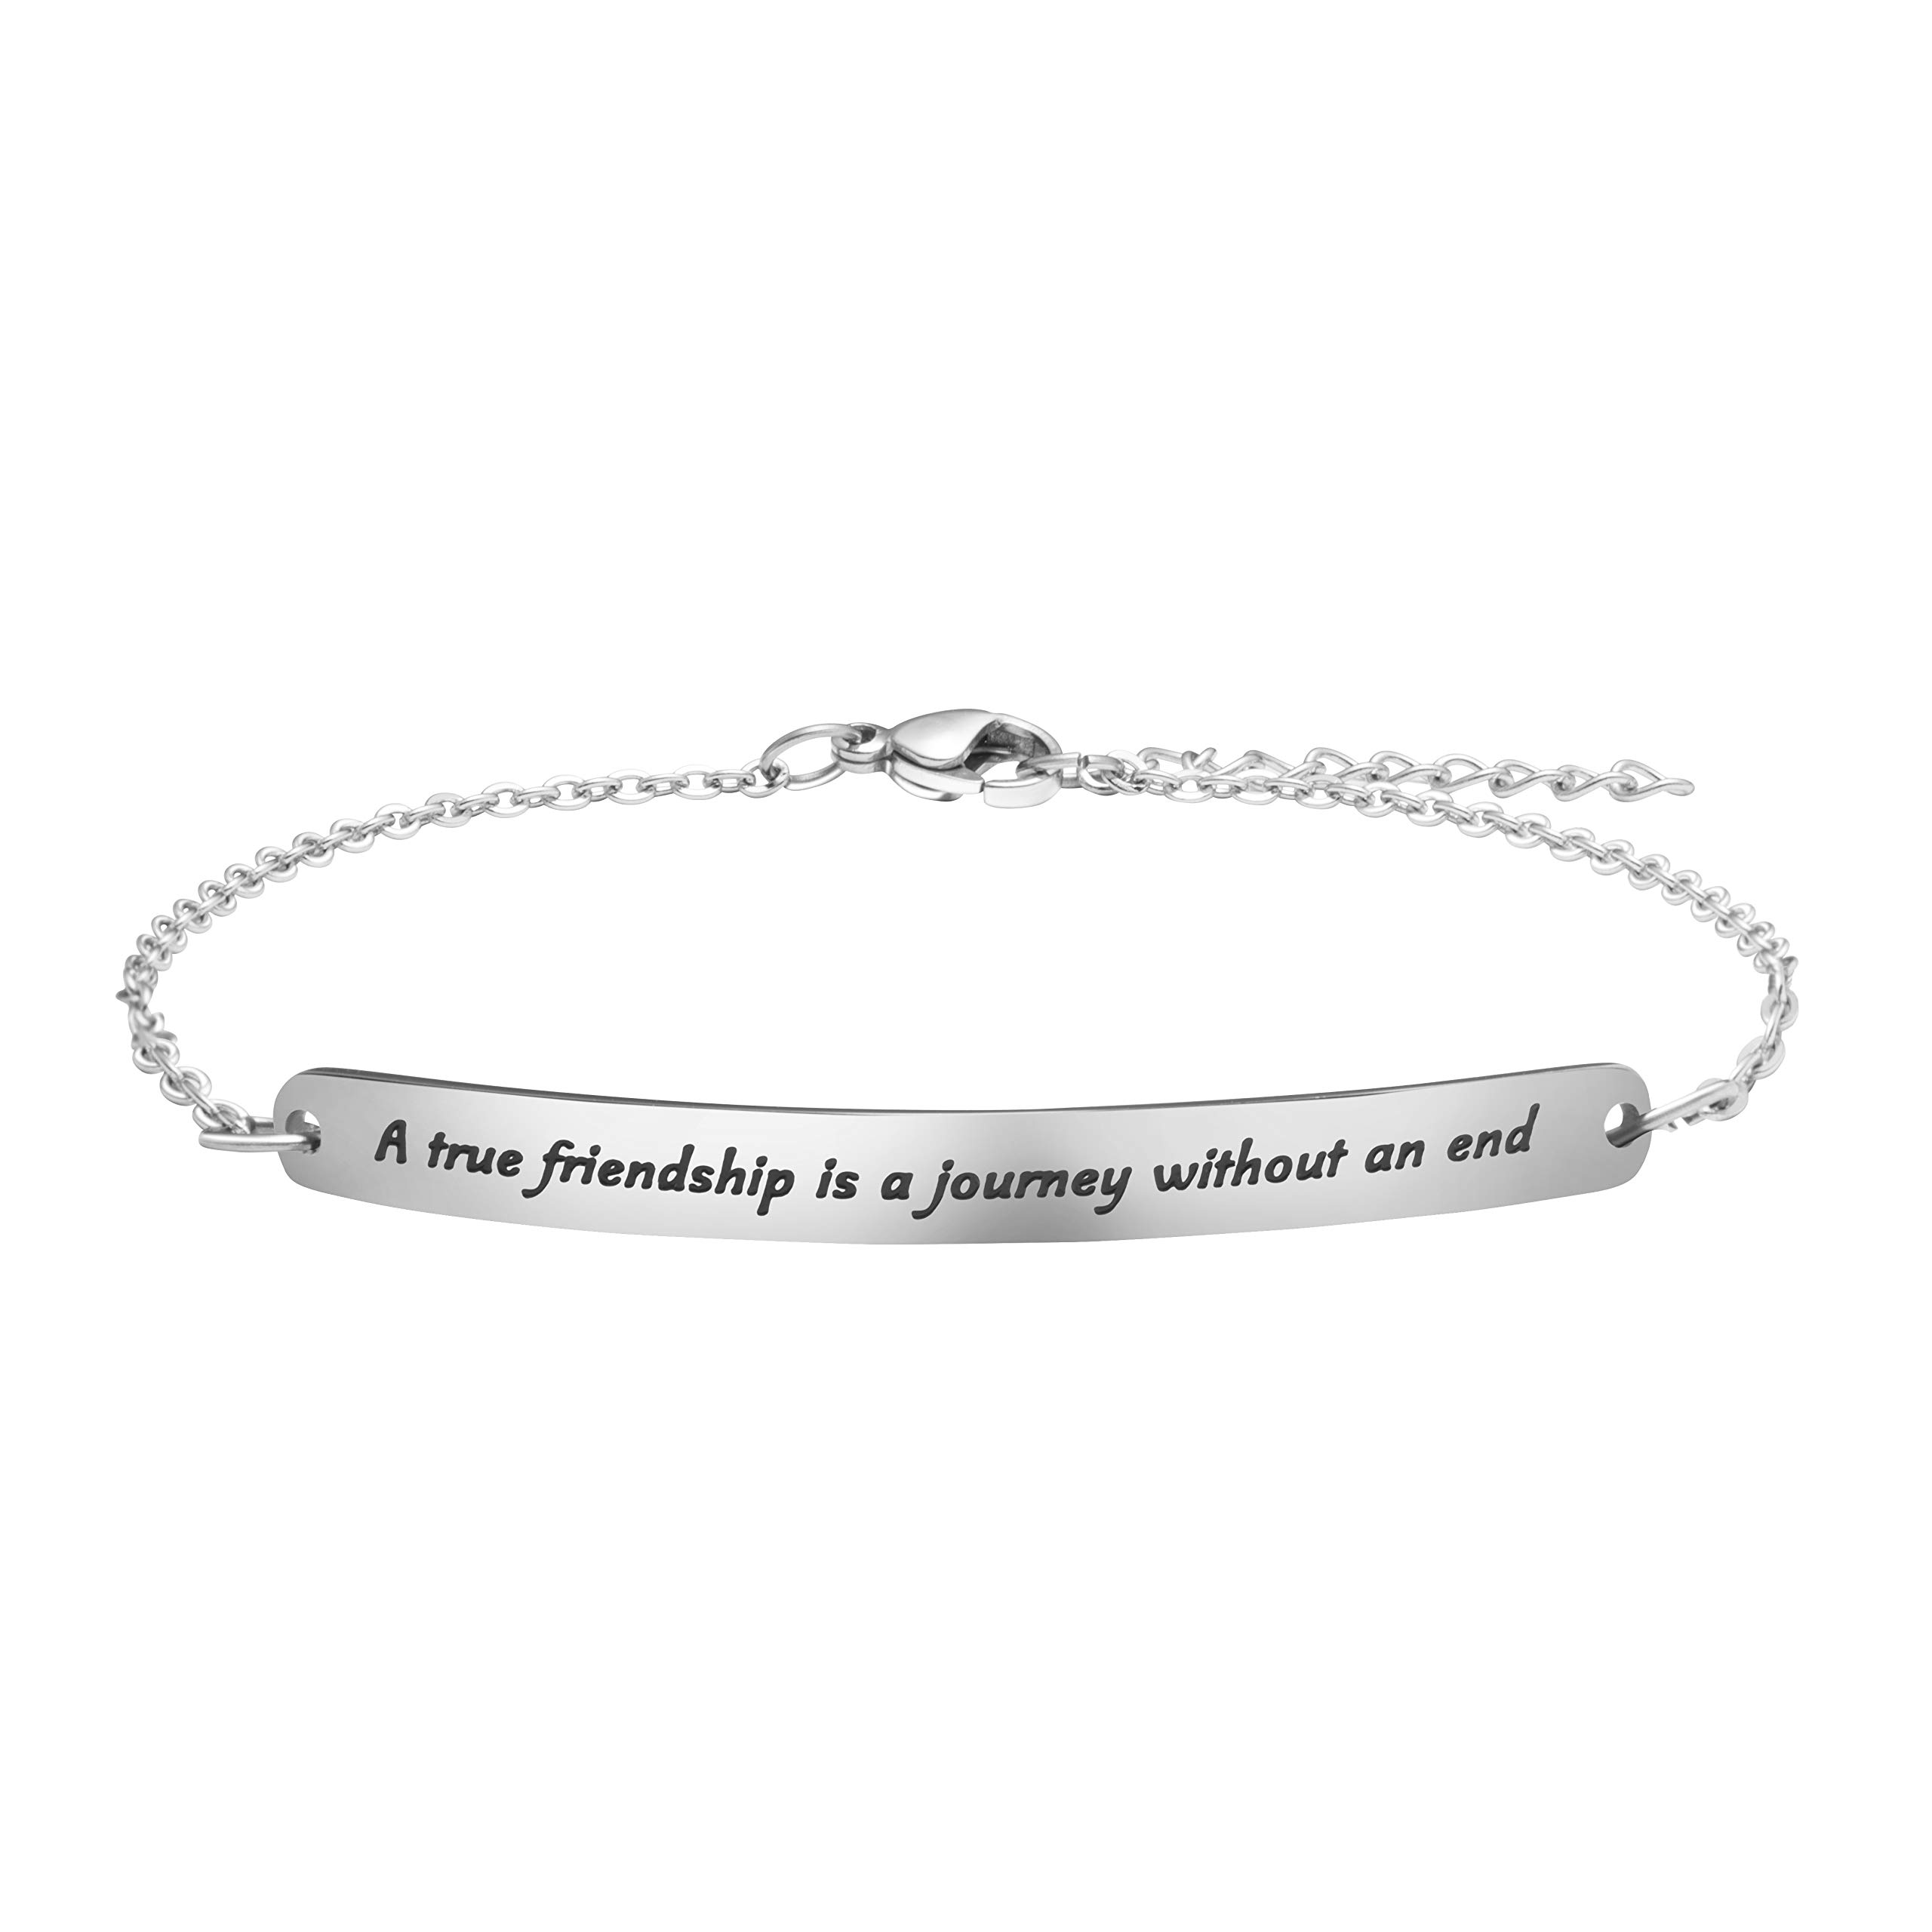 Best Friend Bracelet Distance Jewelry Gifts for Women Mantra Quotes Engraved Personalized A True Friendship is A Journey Without an End